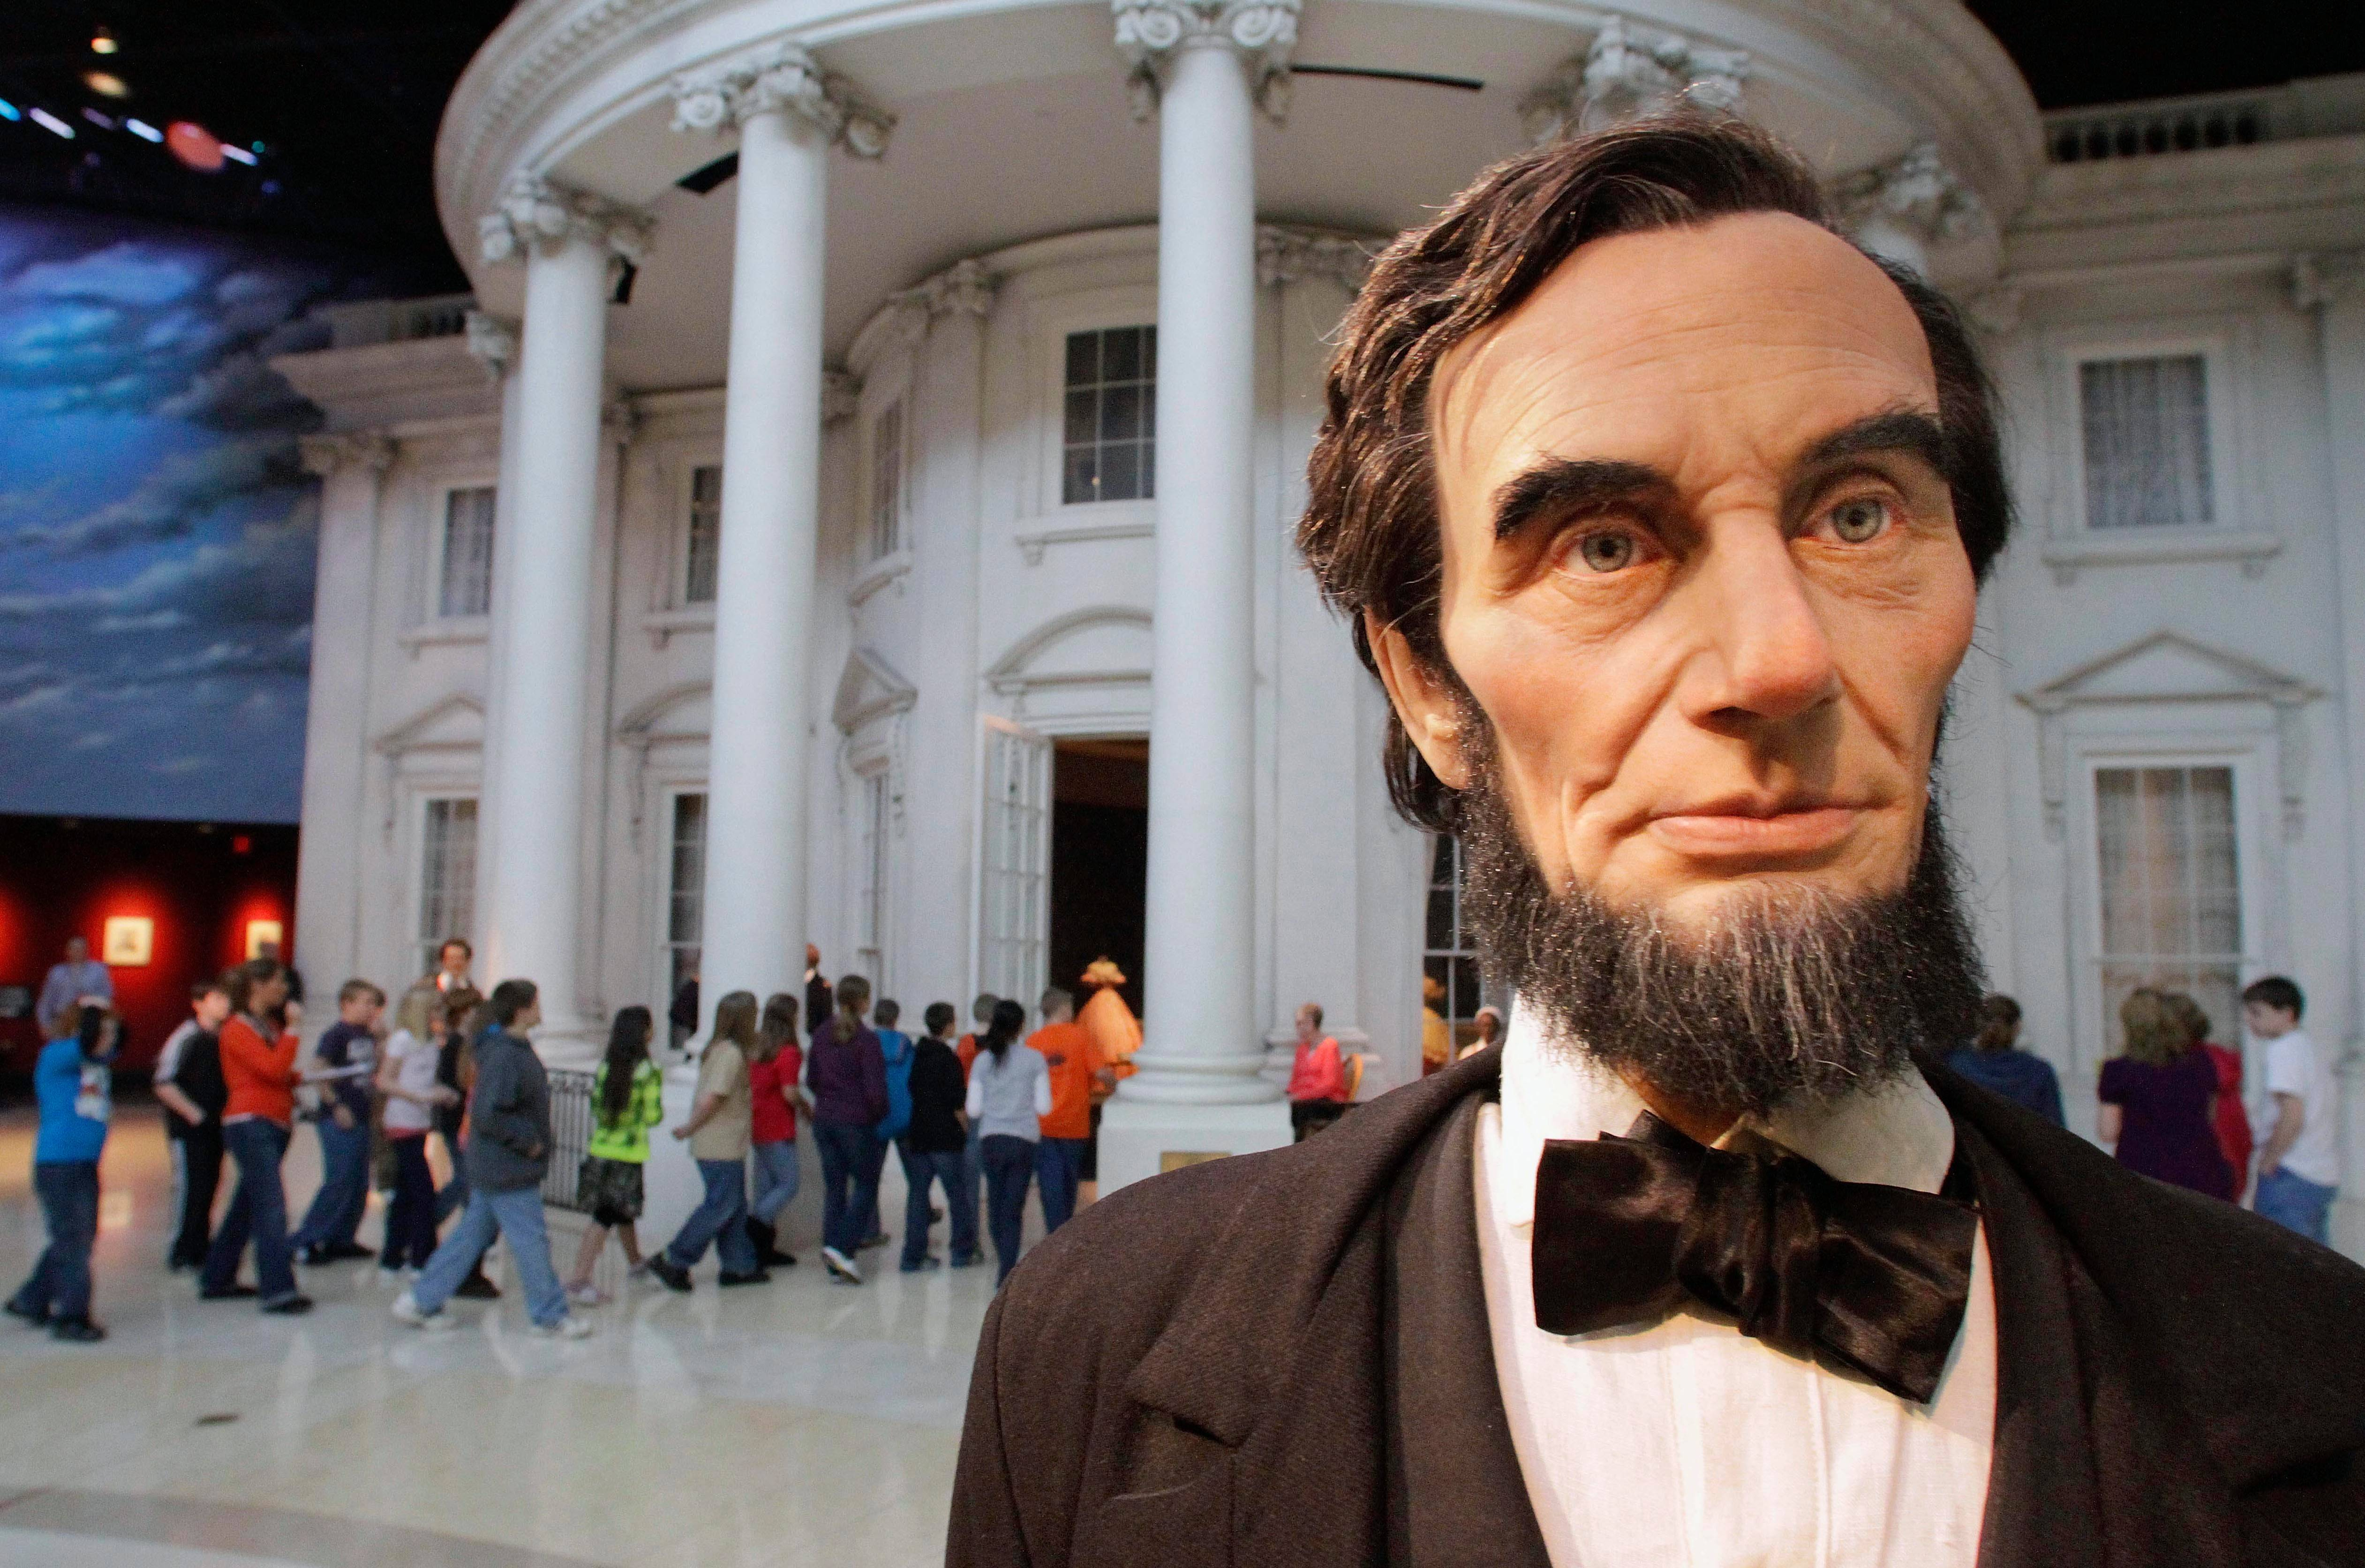 The Abraham Lincoln Presidential Library and Museum in Springfield is Illinois' only presidential library, but the state hopes to attract the Barack Obama Presidential Library as well.